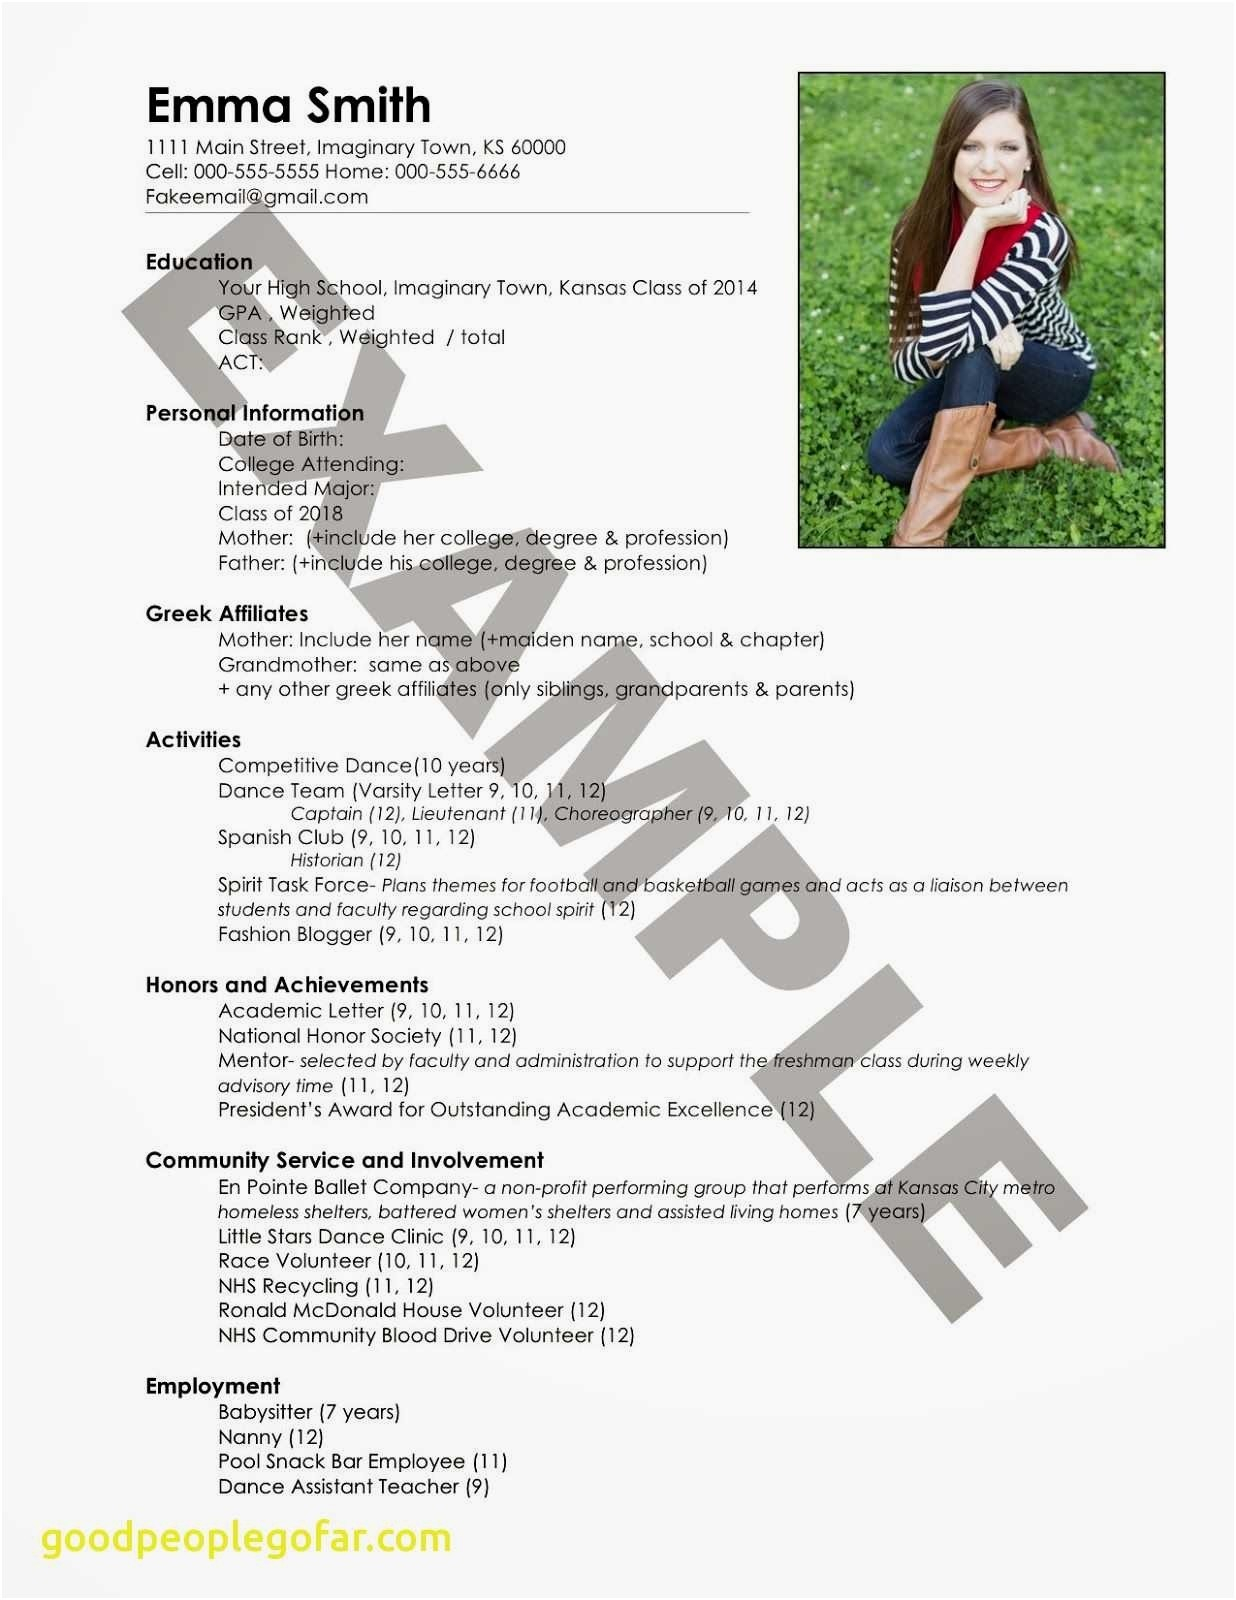 Post Your Resume - Resume Help Free Awesome Fresh Entry Level Resume sorority Resume 0d